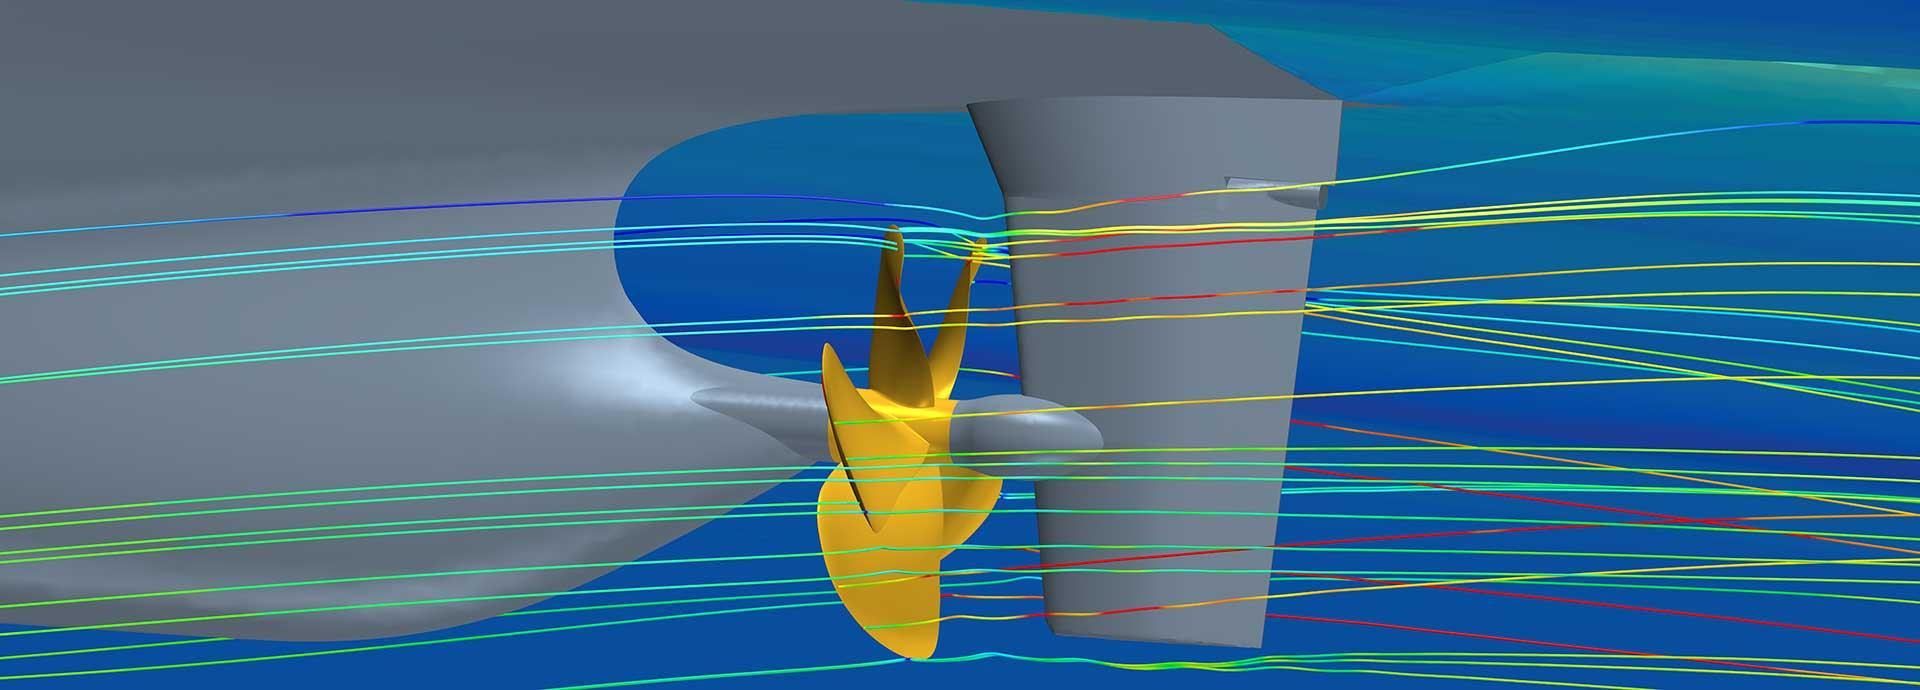 How digital propellers are getting close to the real thing